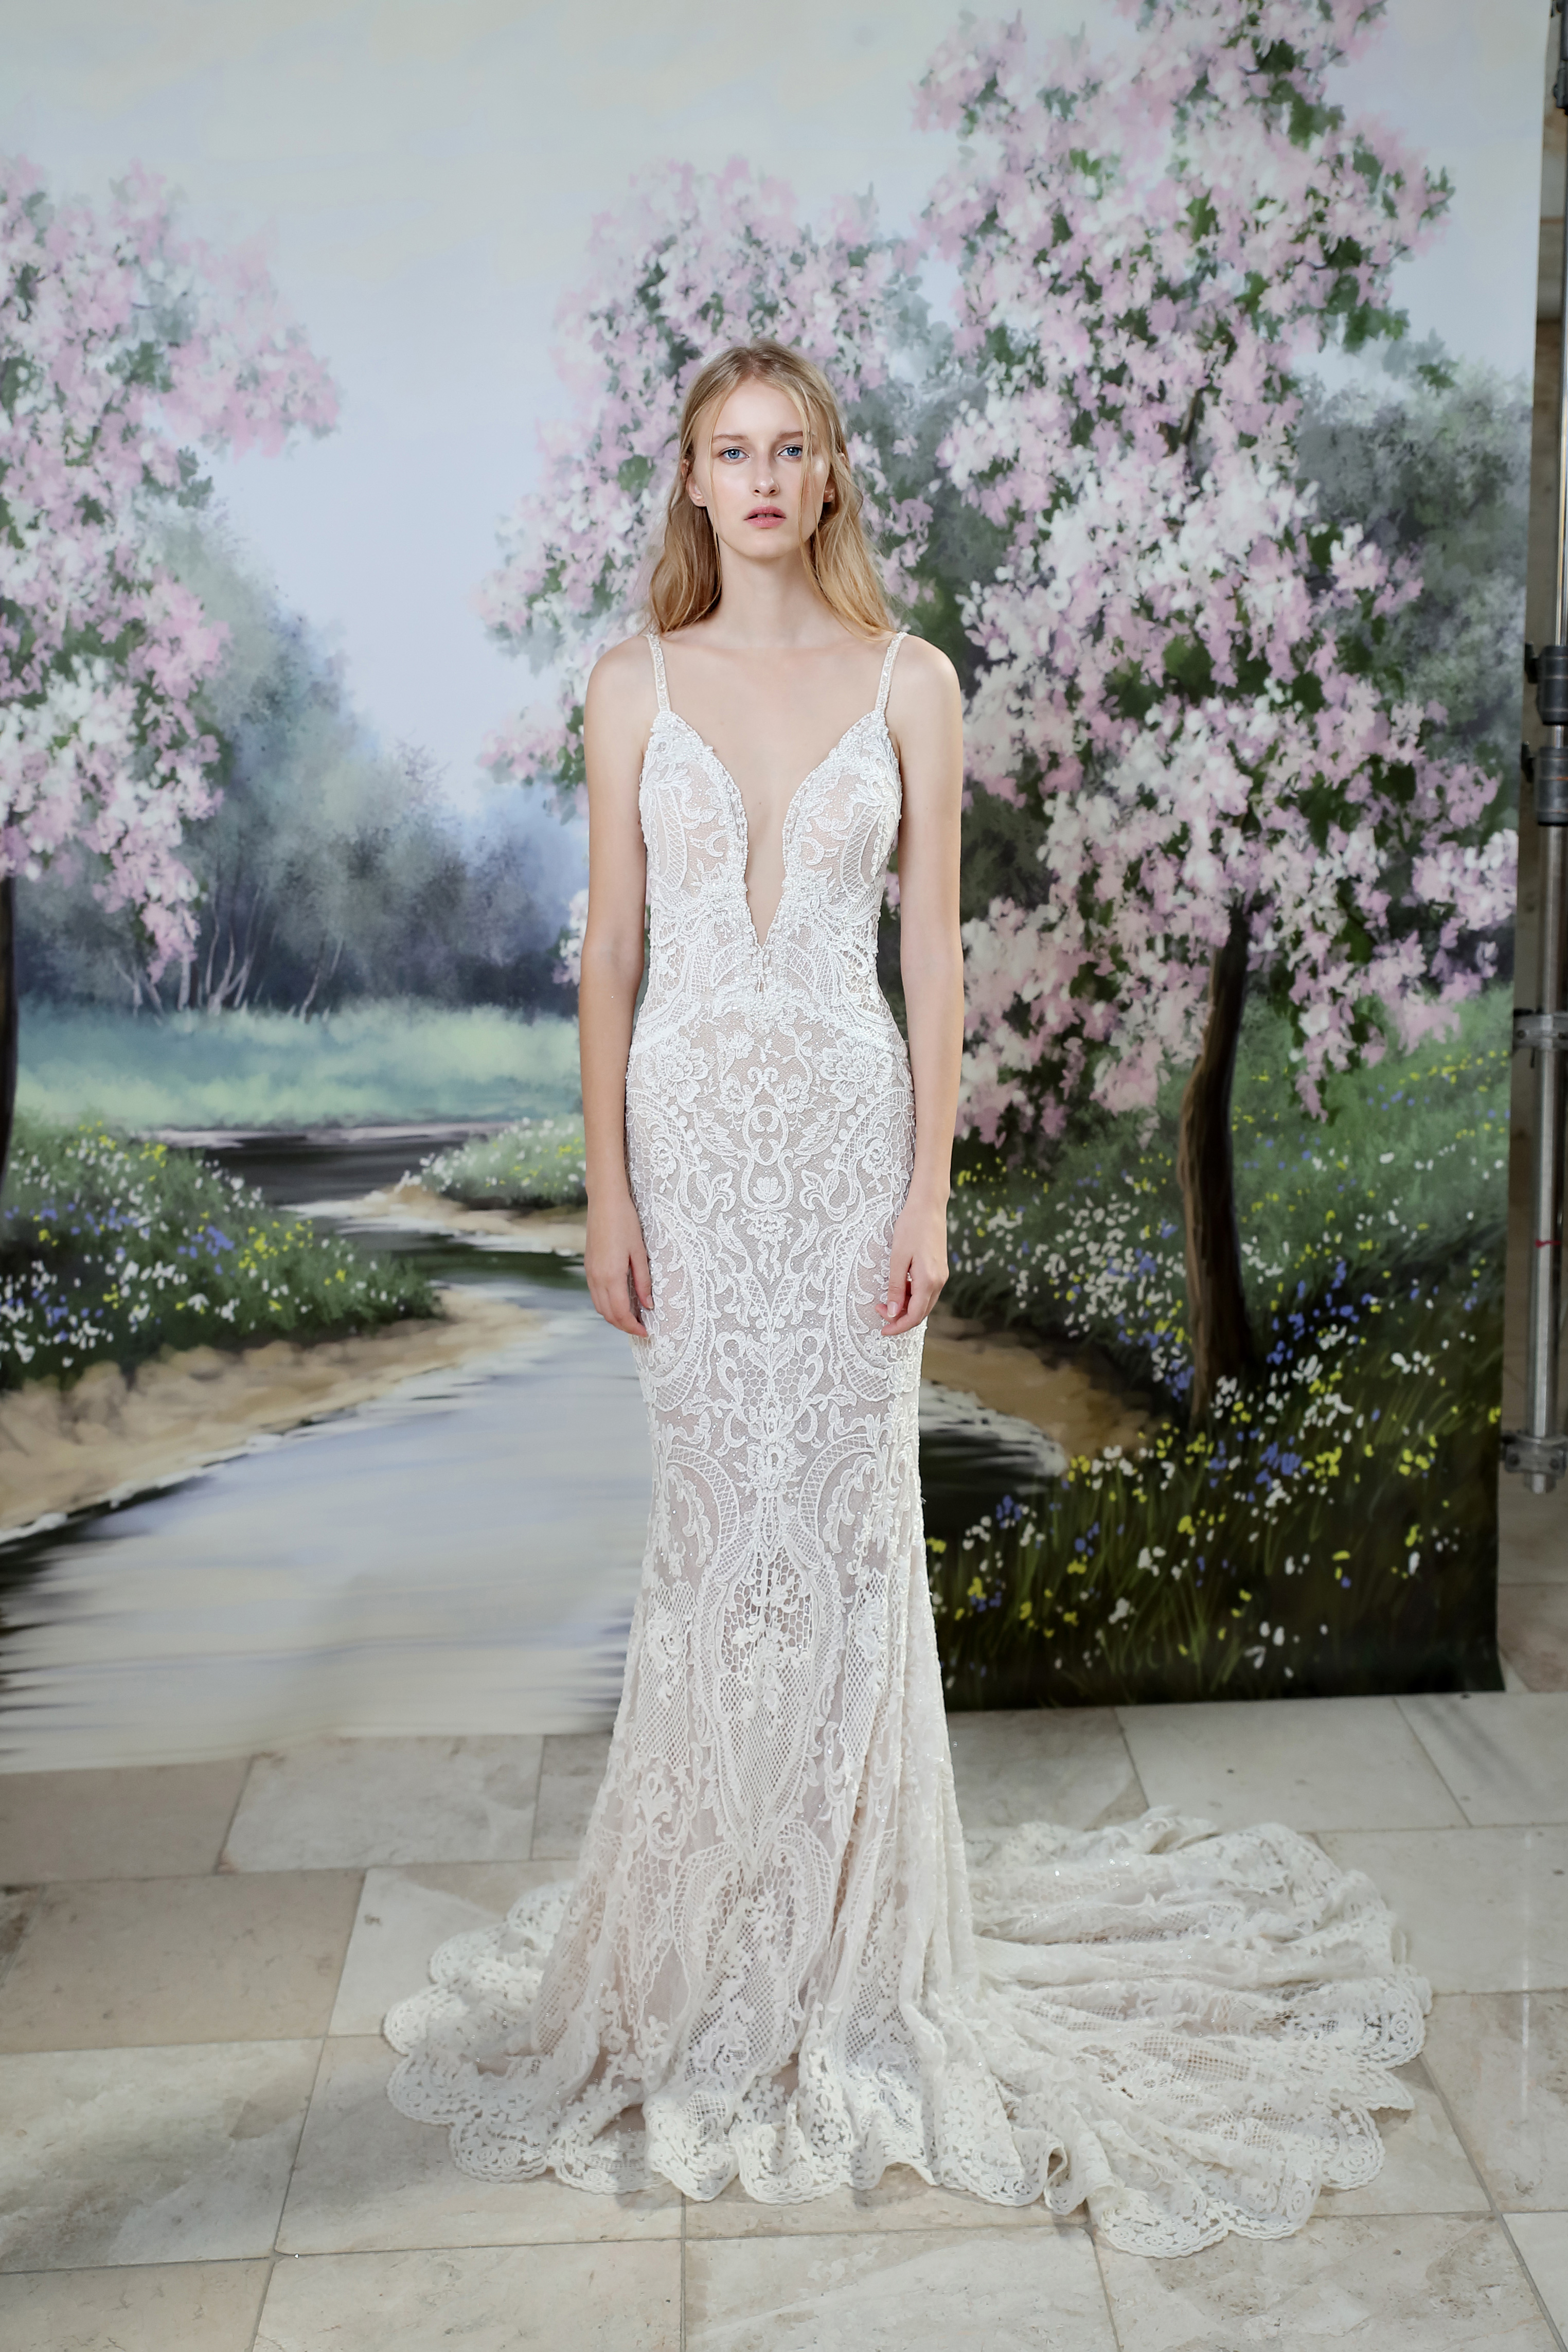 Gala by Galia Lahav sheath wedding dress fall 2019